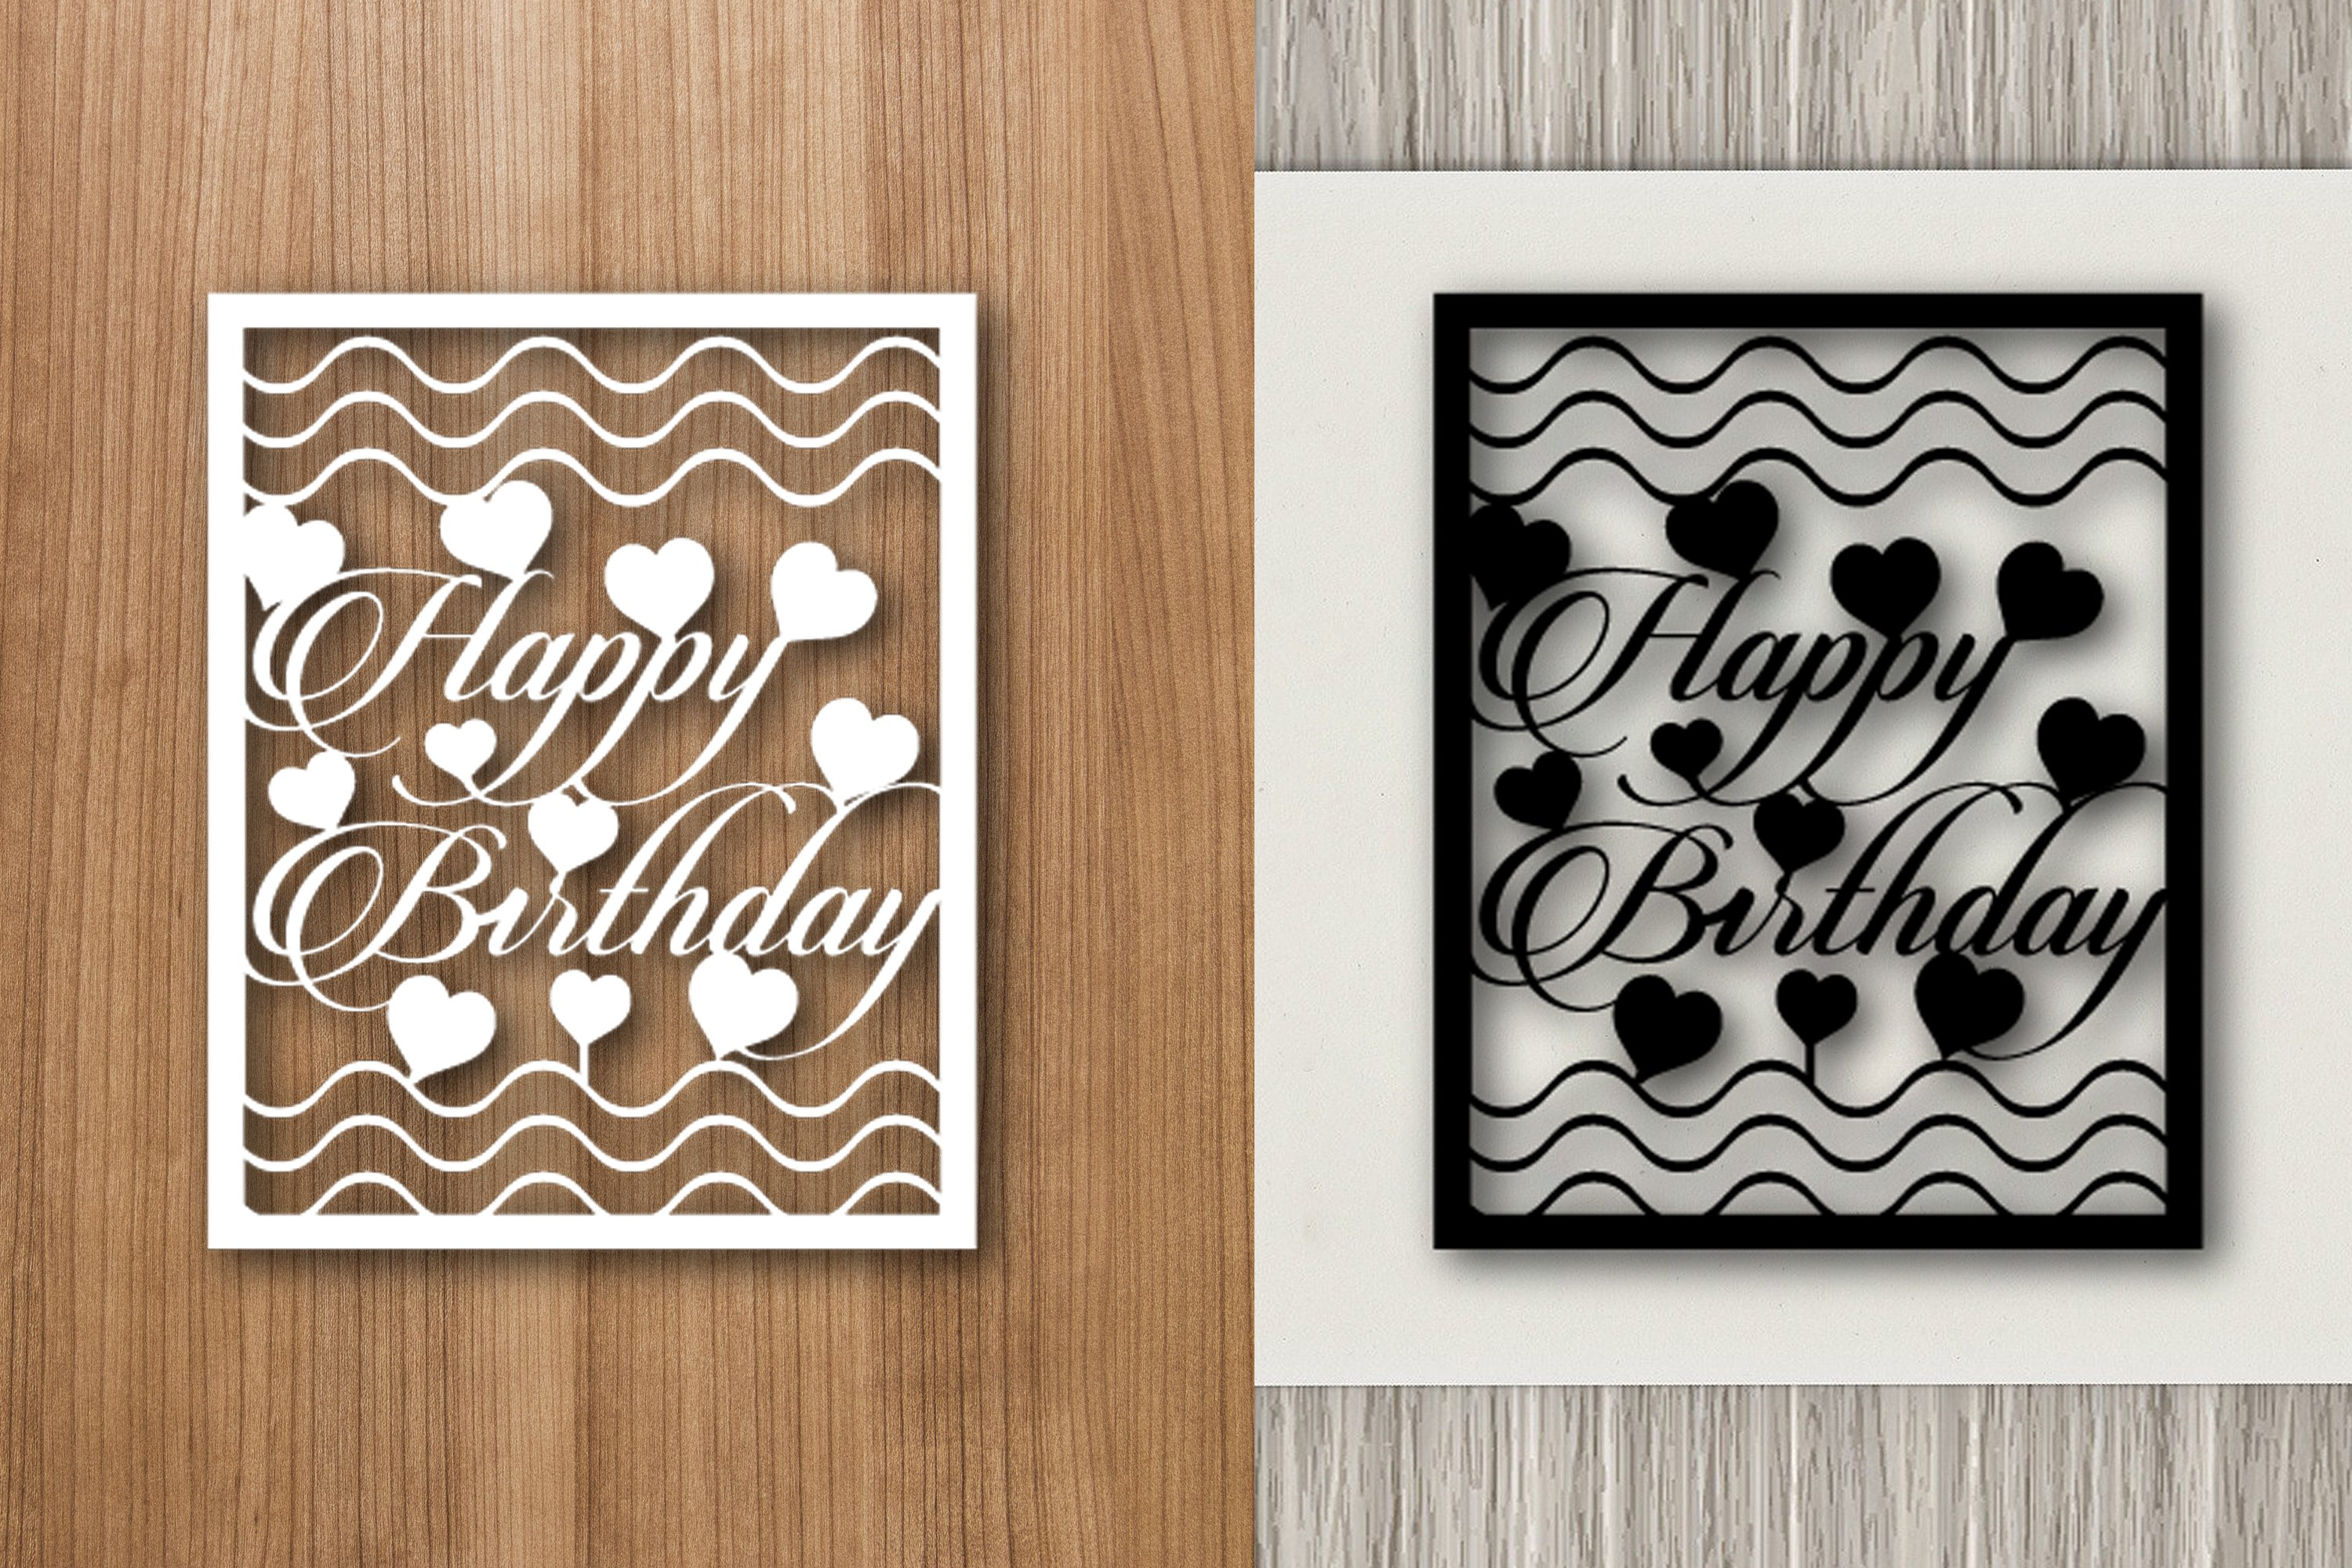 Happy Birthday Paper Template Design example image 1